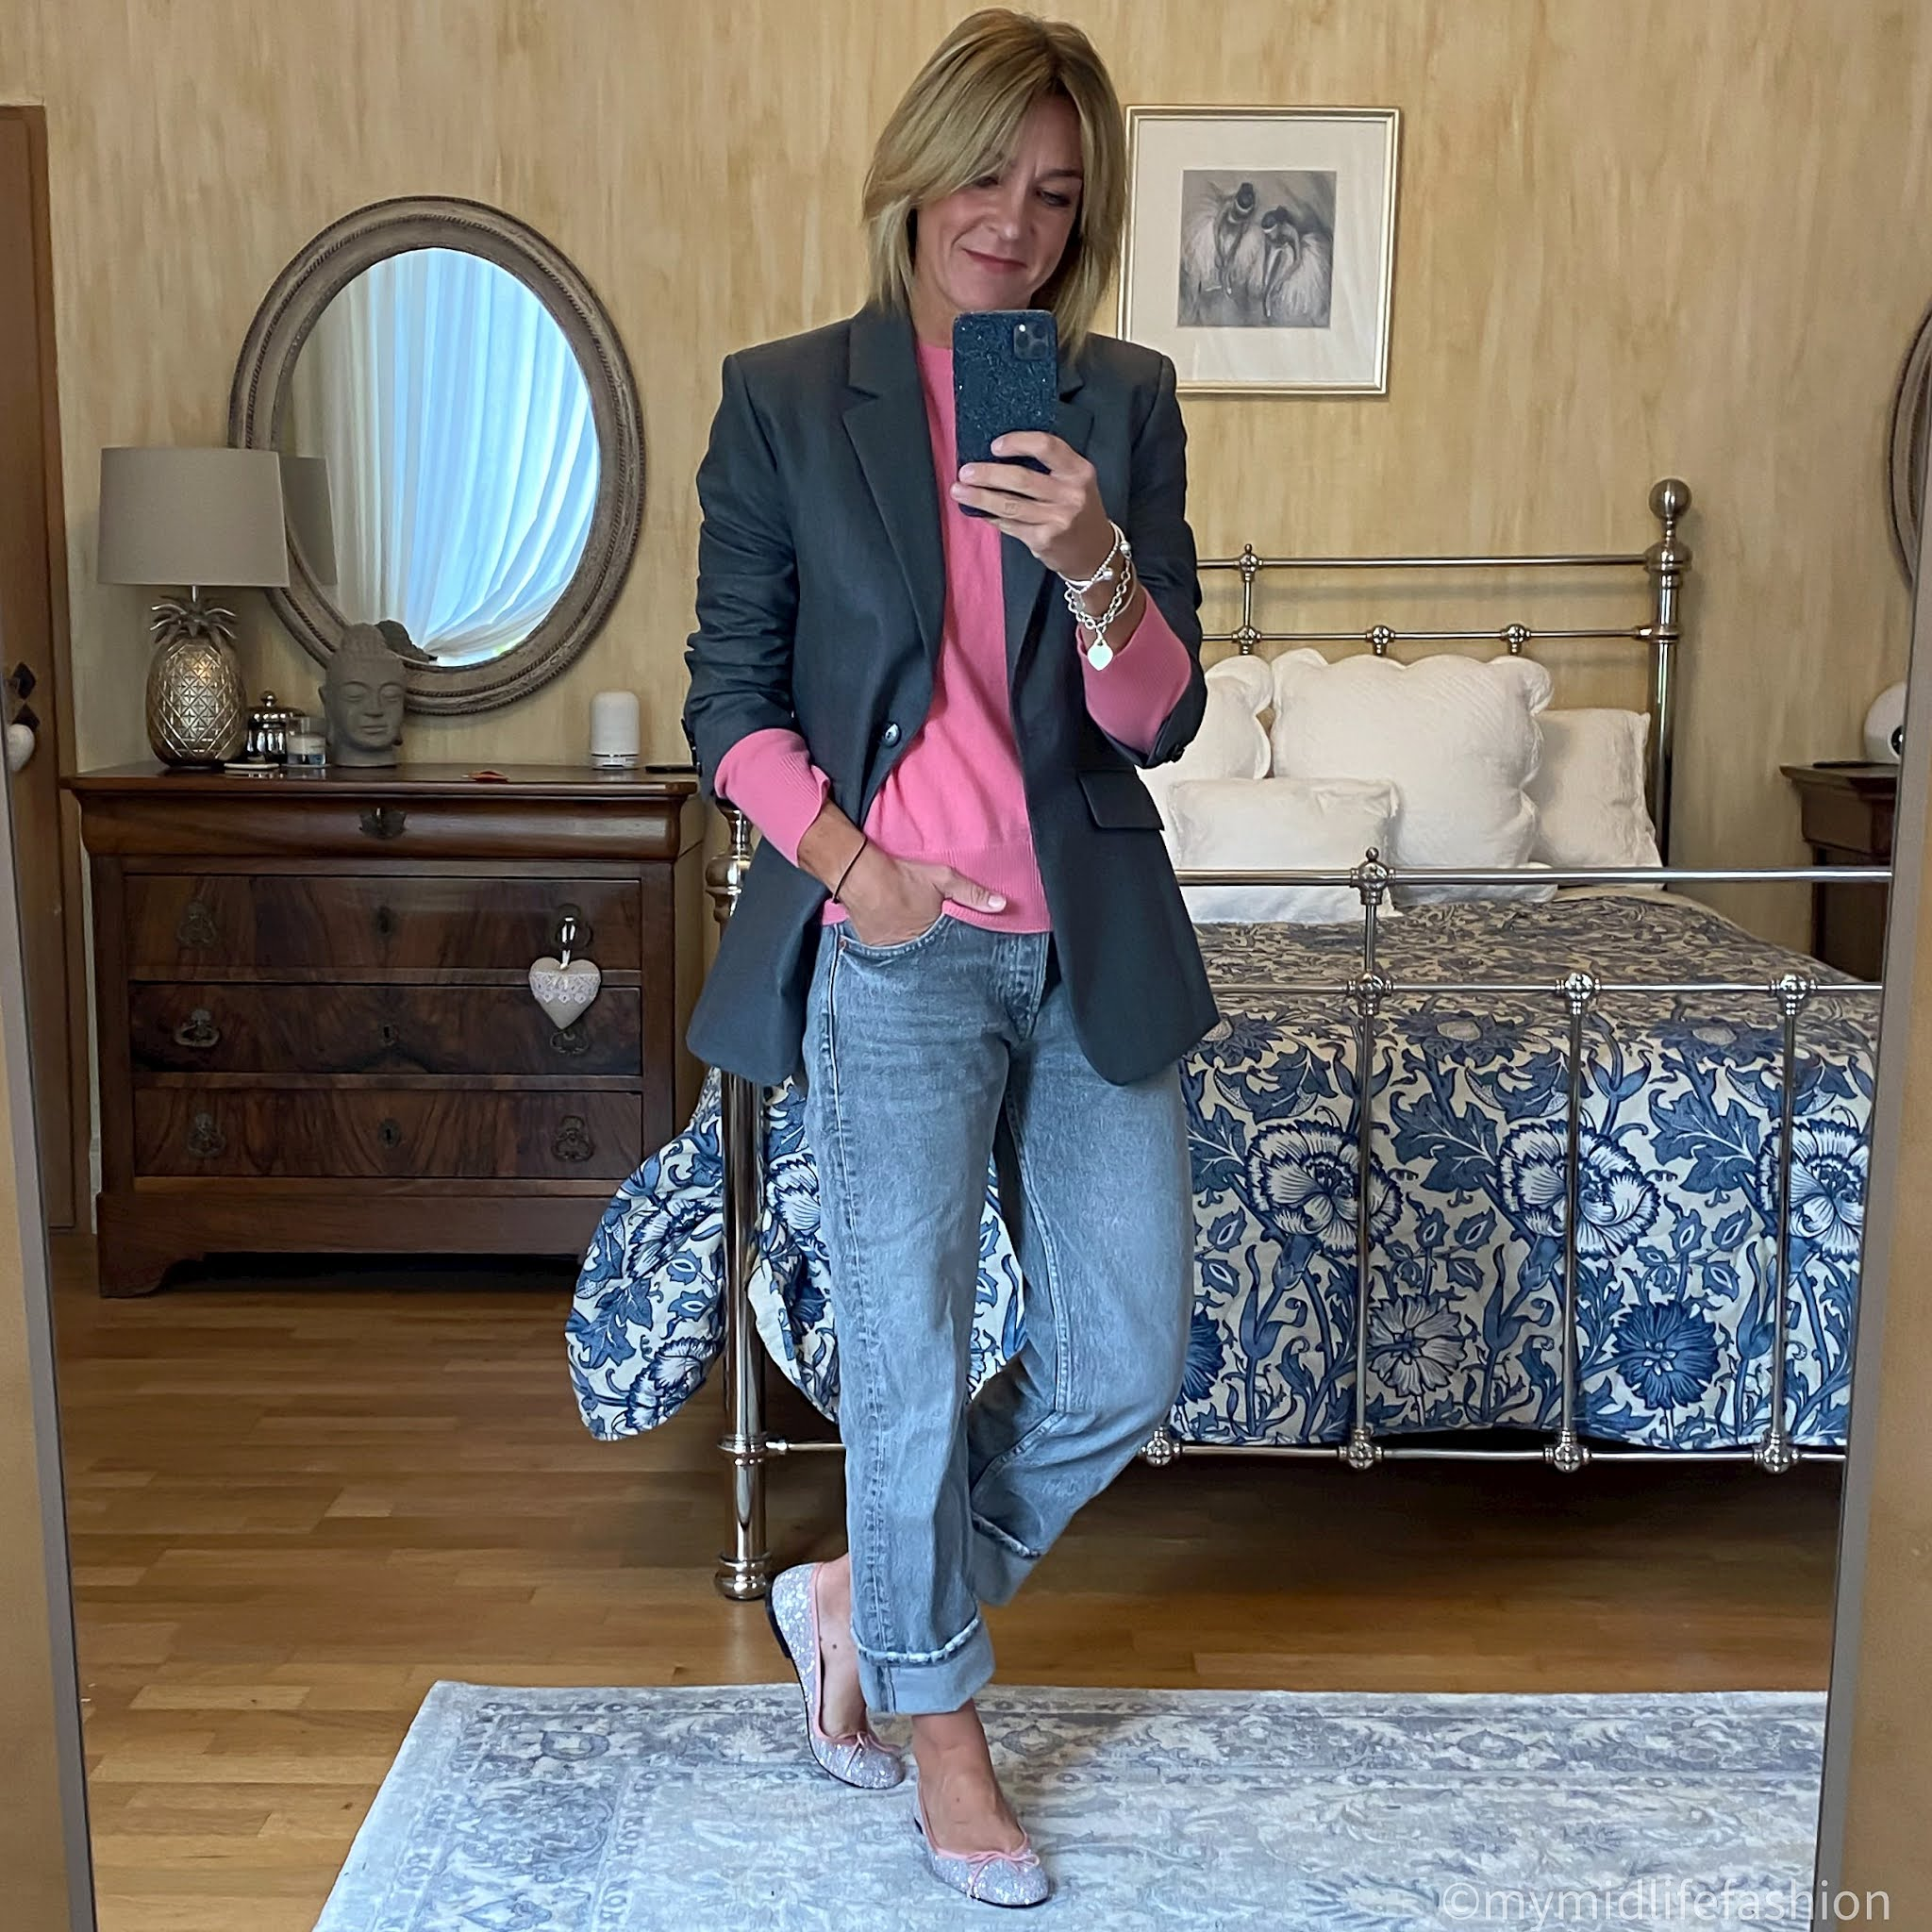 my midlife fashion, zara turn up straight leg boyfriend jeans, h and m wool blazer, marks and Spencer pure cashmere round neck jumper, French sole India glitter ballet pumps